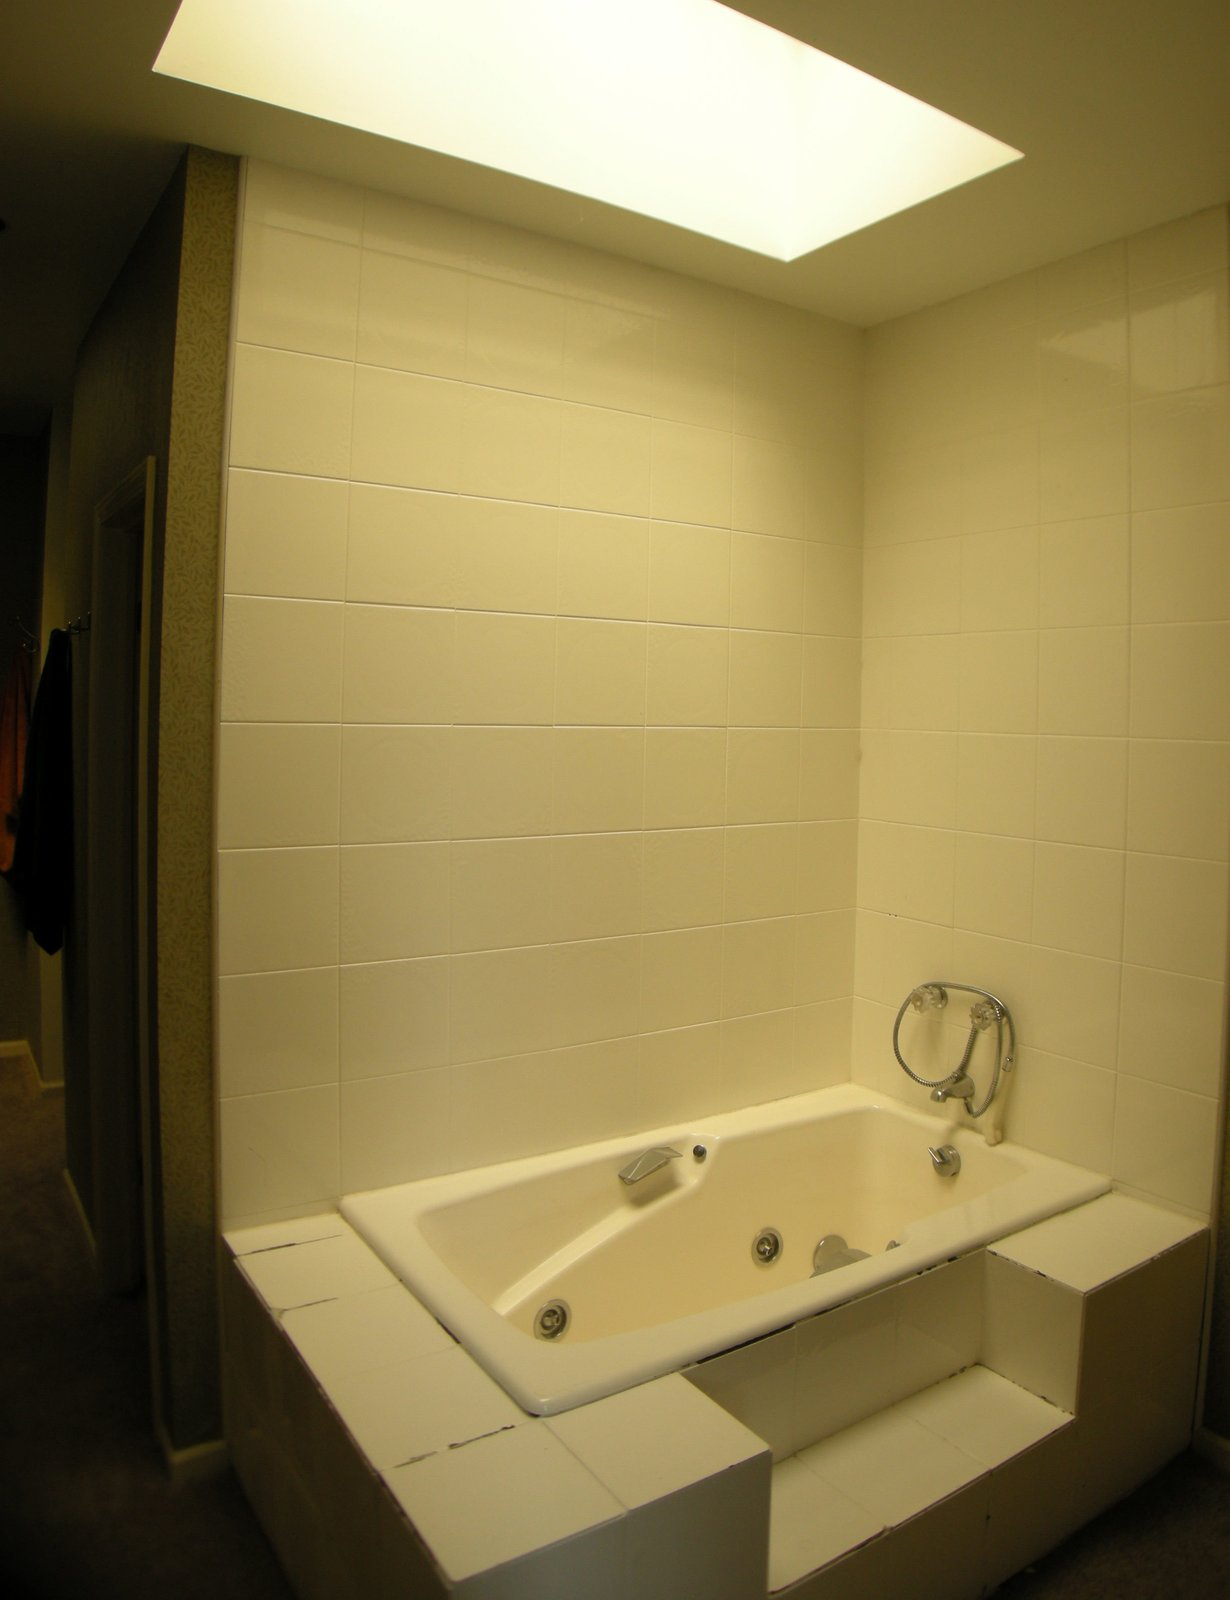 Photo Of In An Impressive Foot Skylight Transforms A - Bathroom partitions chicago